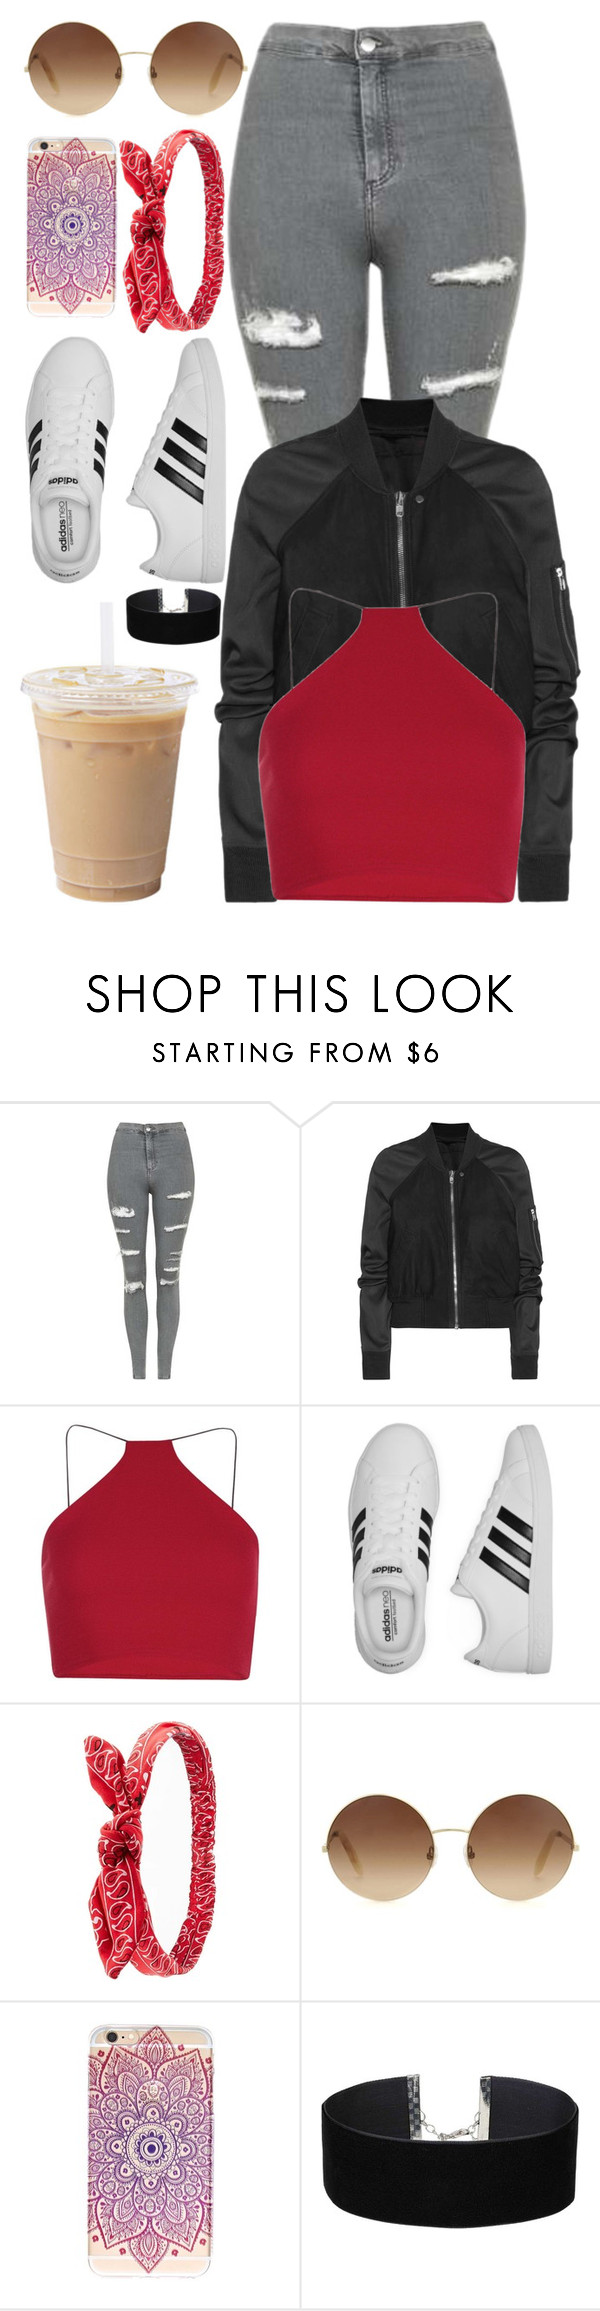 """""""Flex"""" by angelbrubisc ❤ liked on Polyvore featuring Topshop, Rick Owens, Milly, adidas, Charlotte Russe, Victoria Beckham and Miss Selfridge"""